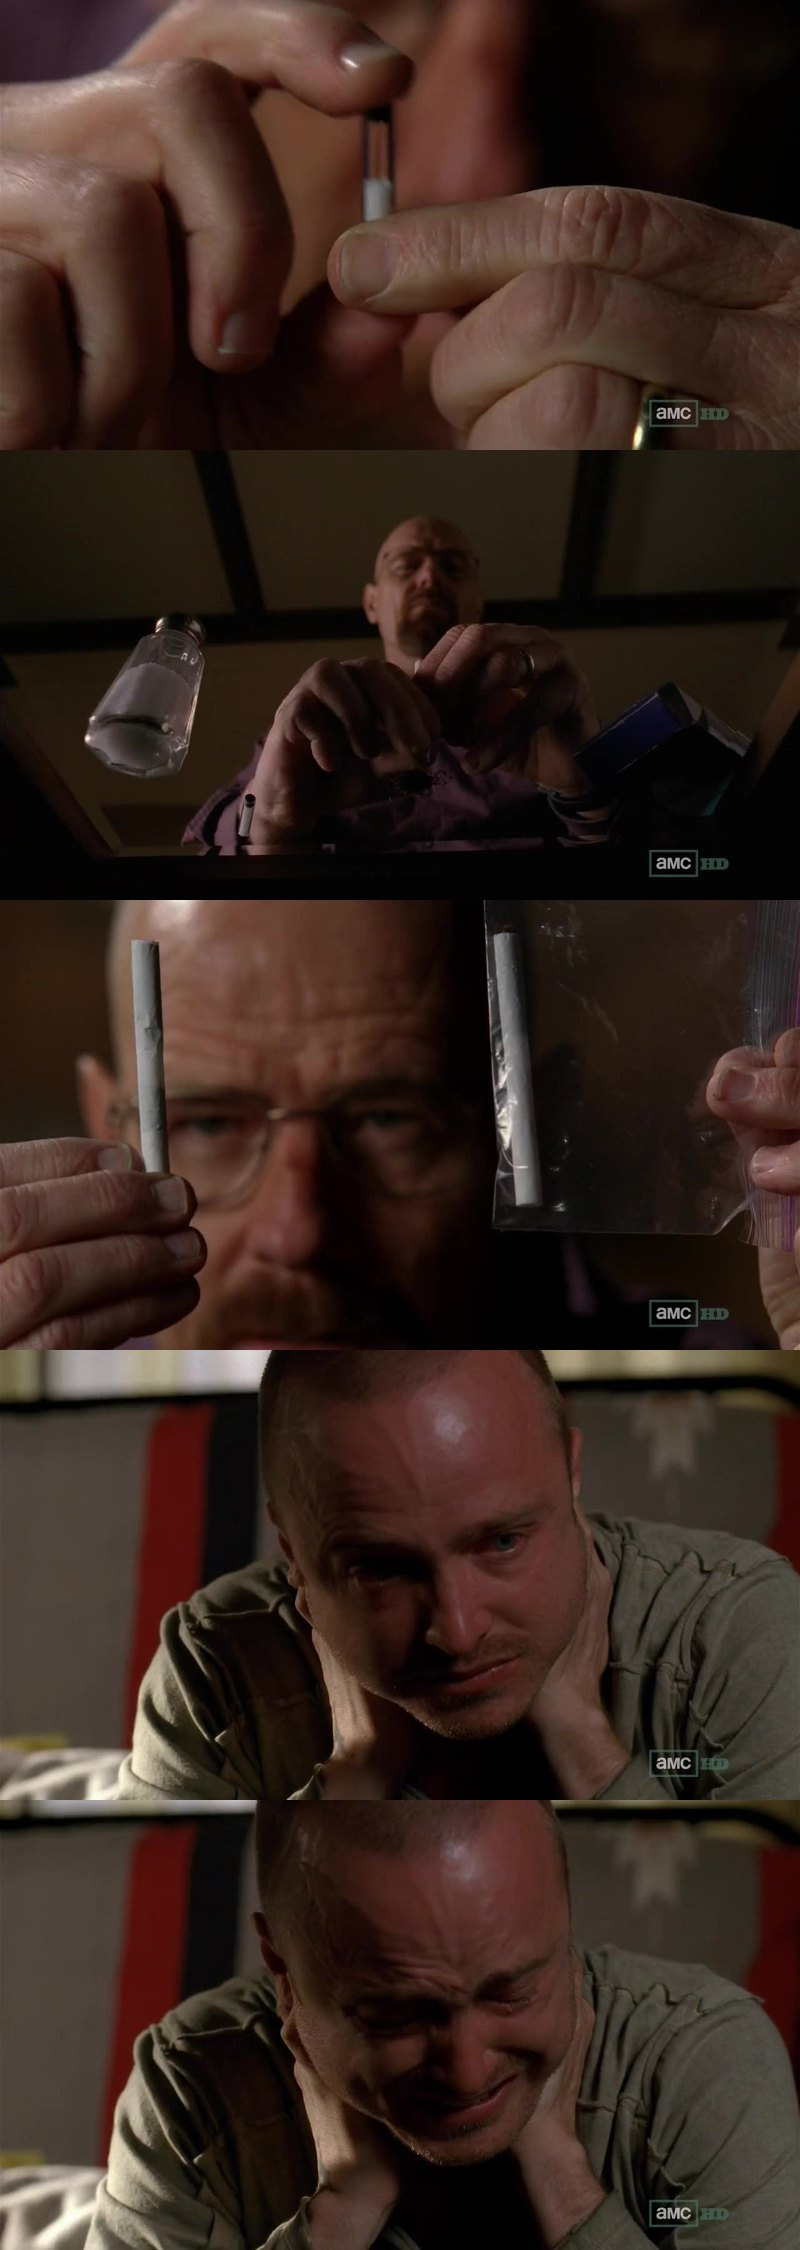 Walt 👊🏼😤 How could you do this to Jesse 😢